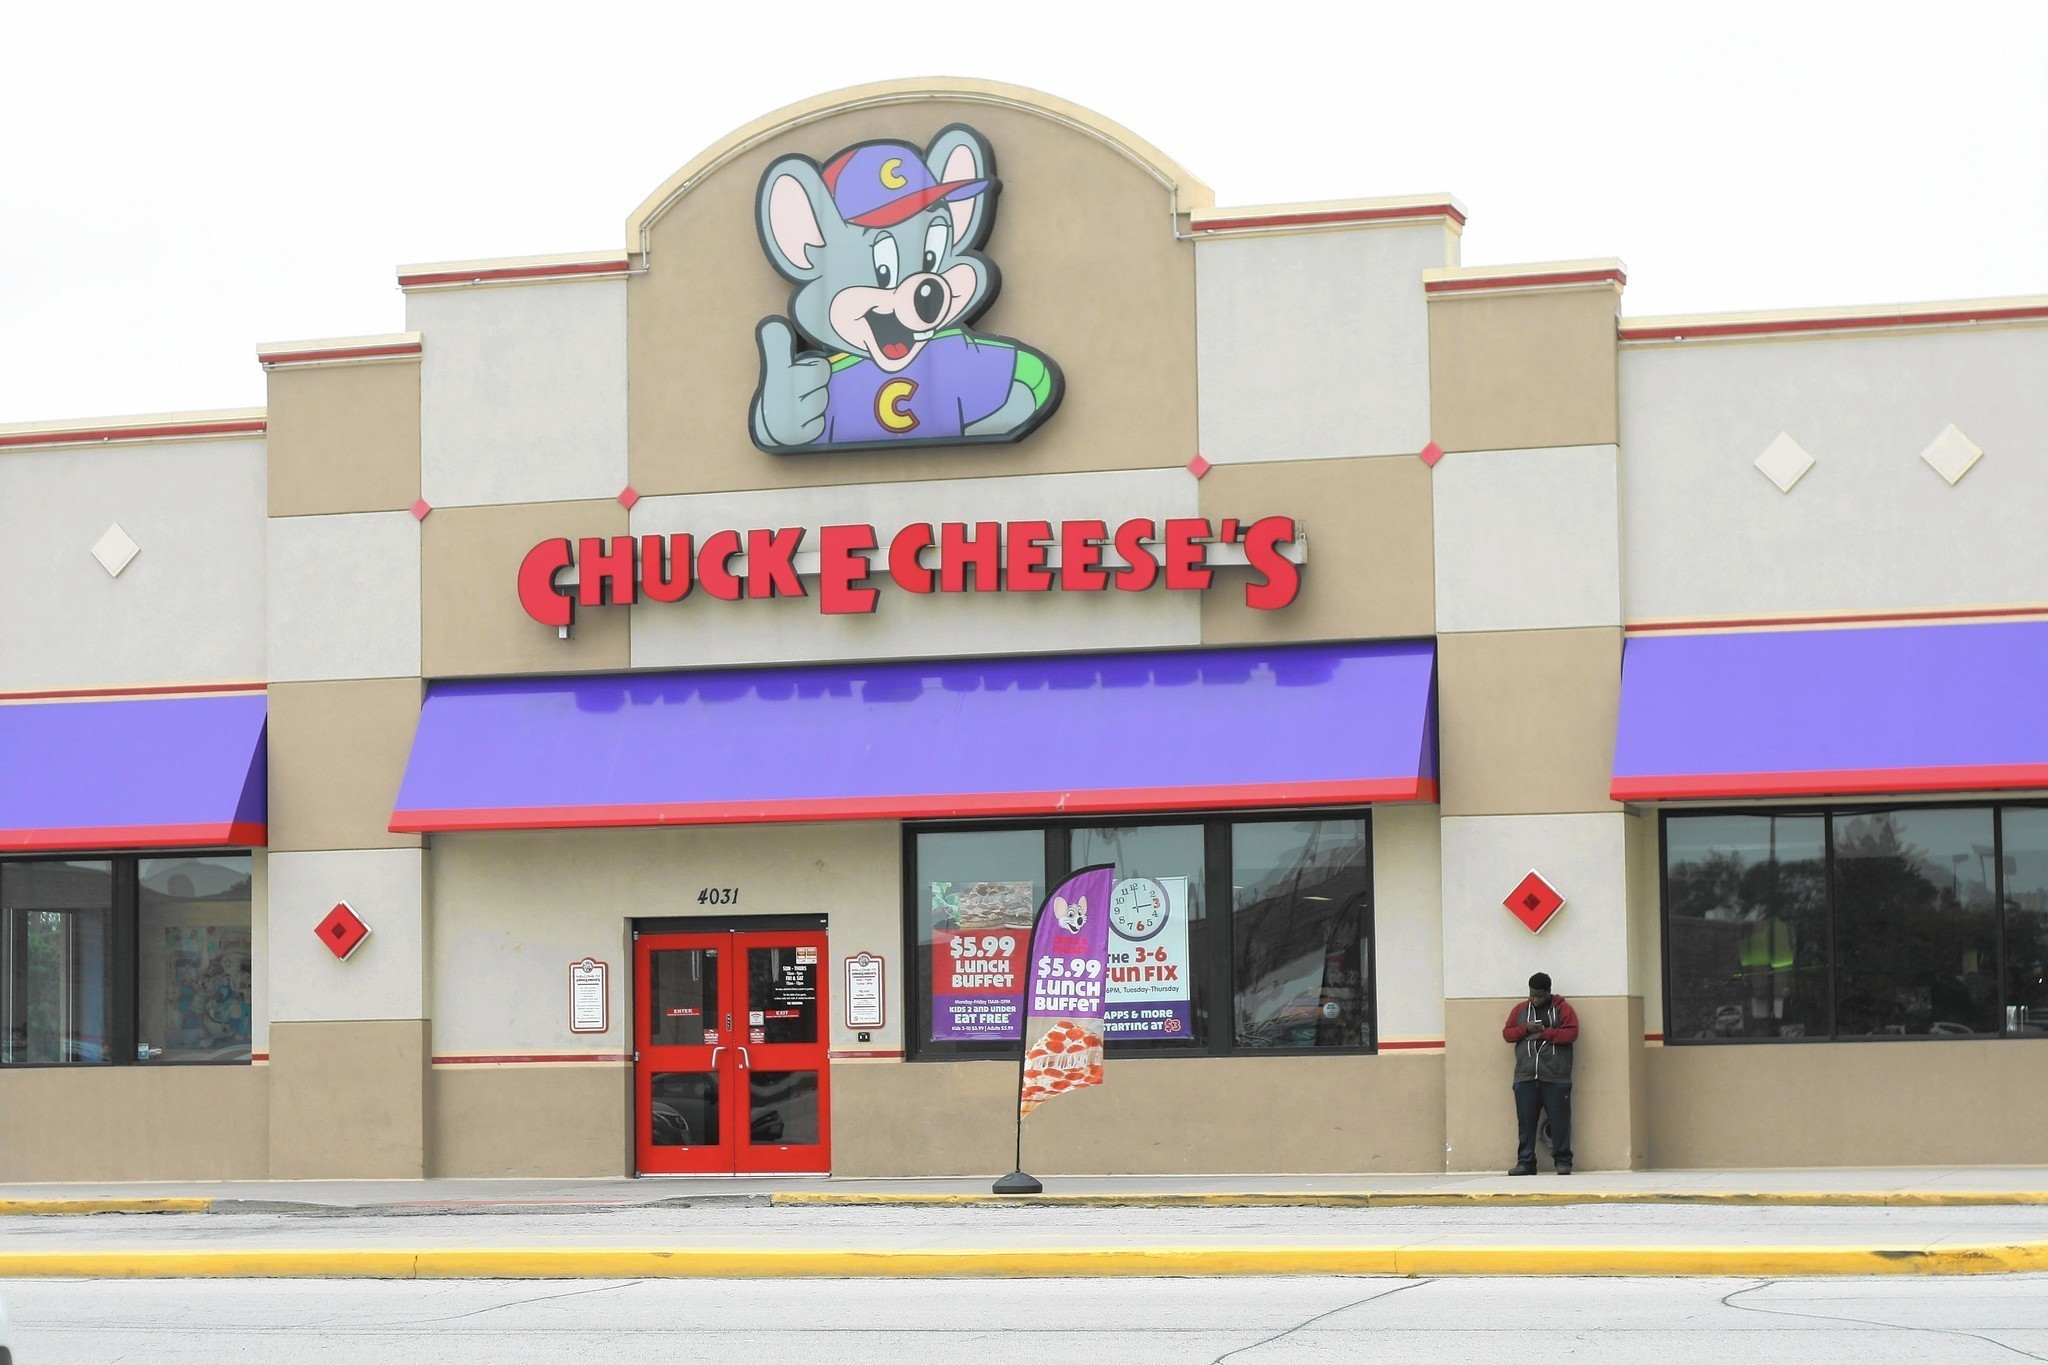 Details: Chuck E Cheese's is proud to salute the men and women of our armed forces and their mediabroadqc.cf from 2 great offers: The Alpha Get a Large 1-topping pizza, 4 drinks & 45 tokens for $ ($40 value).The Bravo Get 2 Large 1-topping pizzas, 4 drinks & tokens for $ ($69 value) Just ask about their Military offers and show your Common Access Card or Uniformed Services ID /5(8).